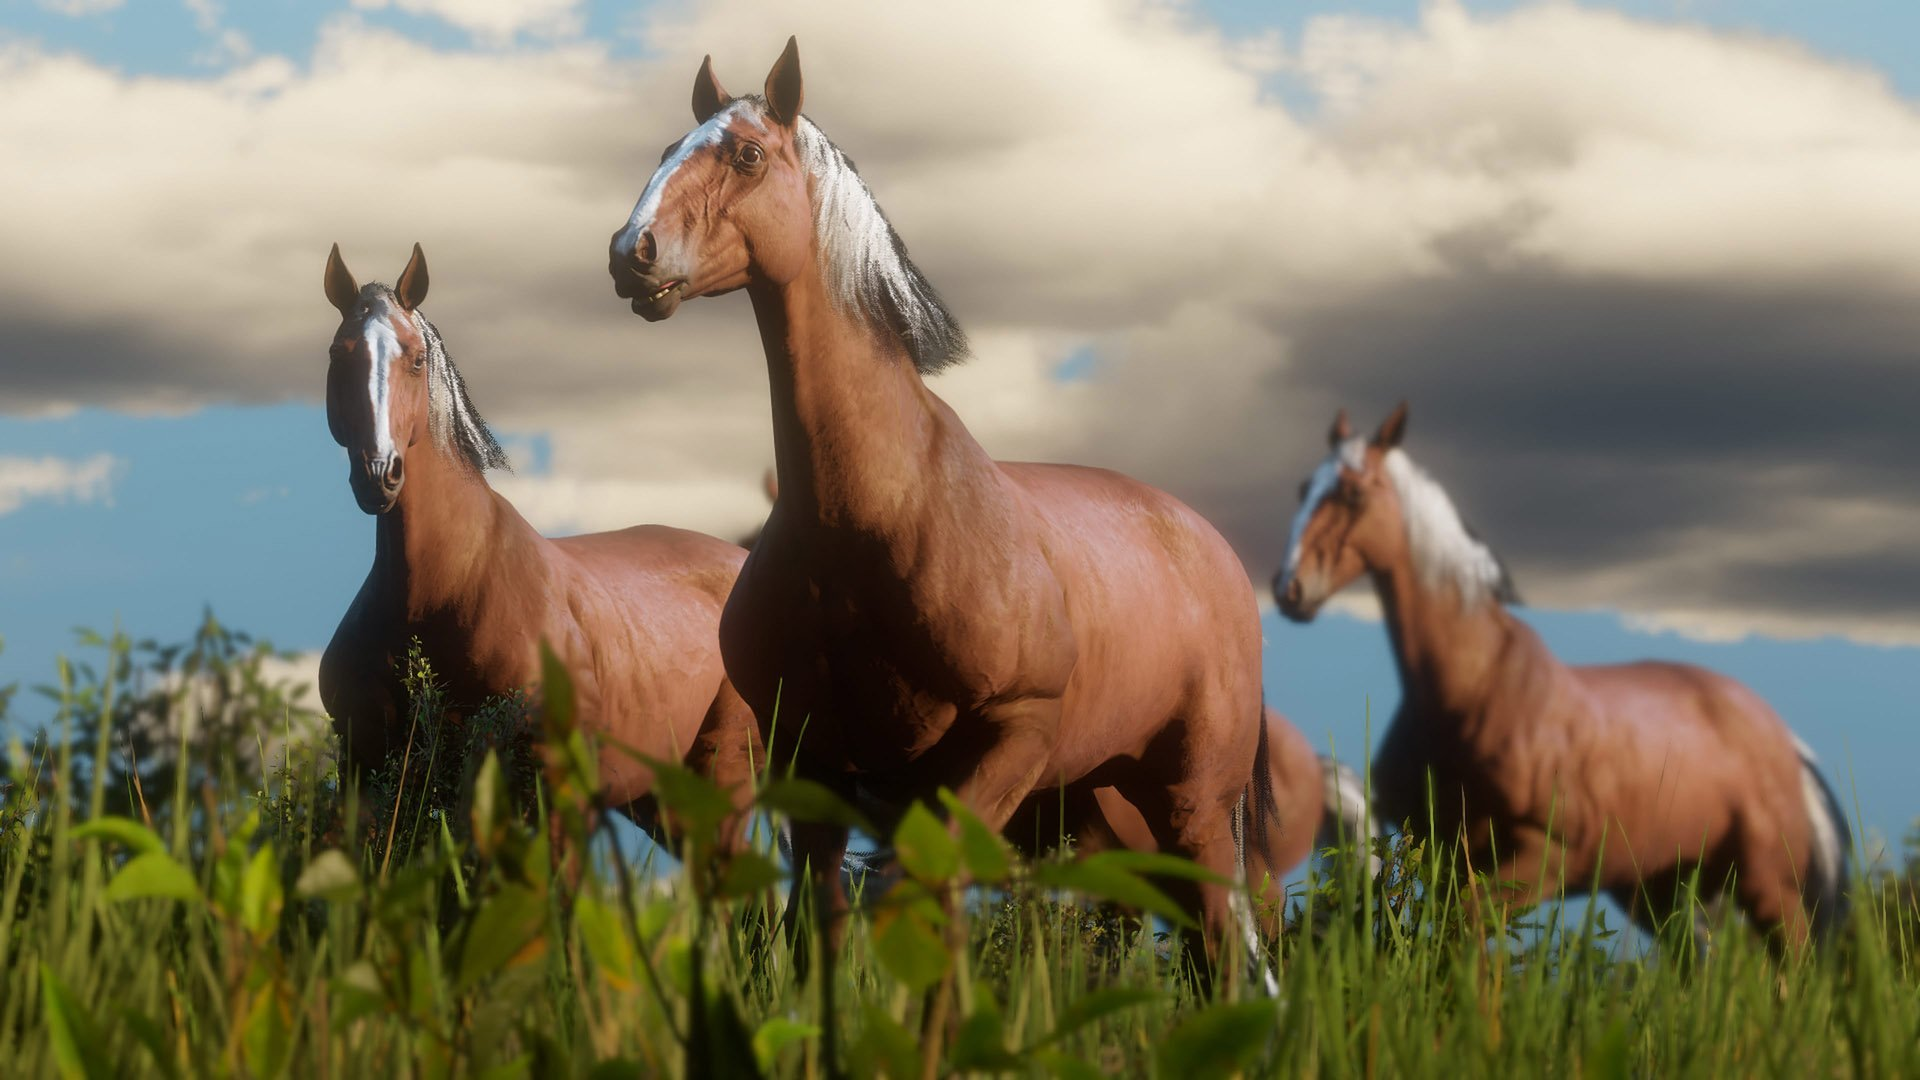 Many different types of horses are available in Red Dead Redemption 2.